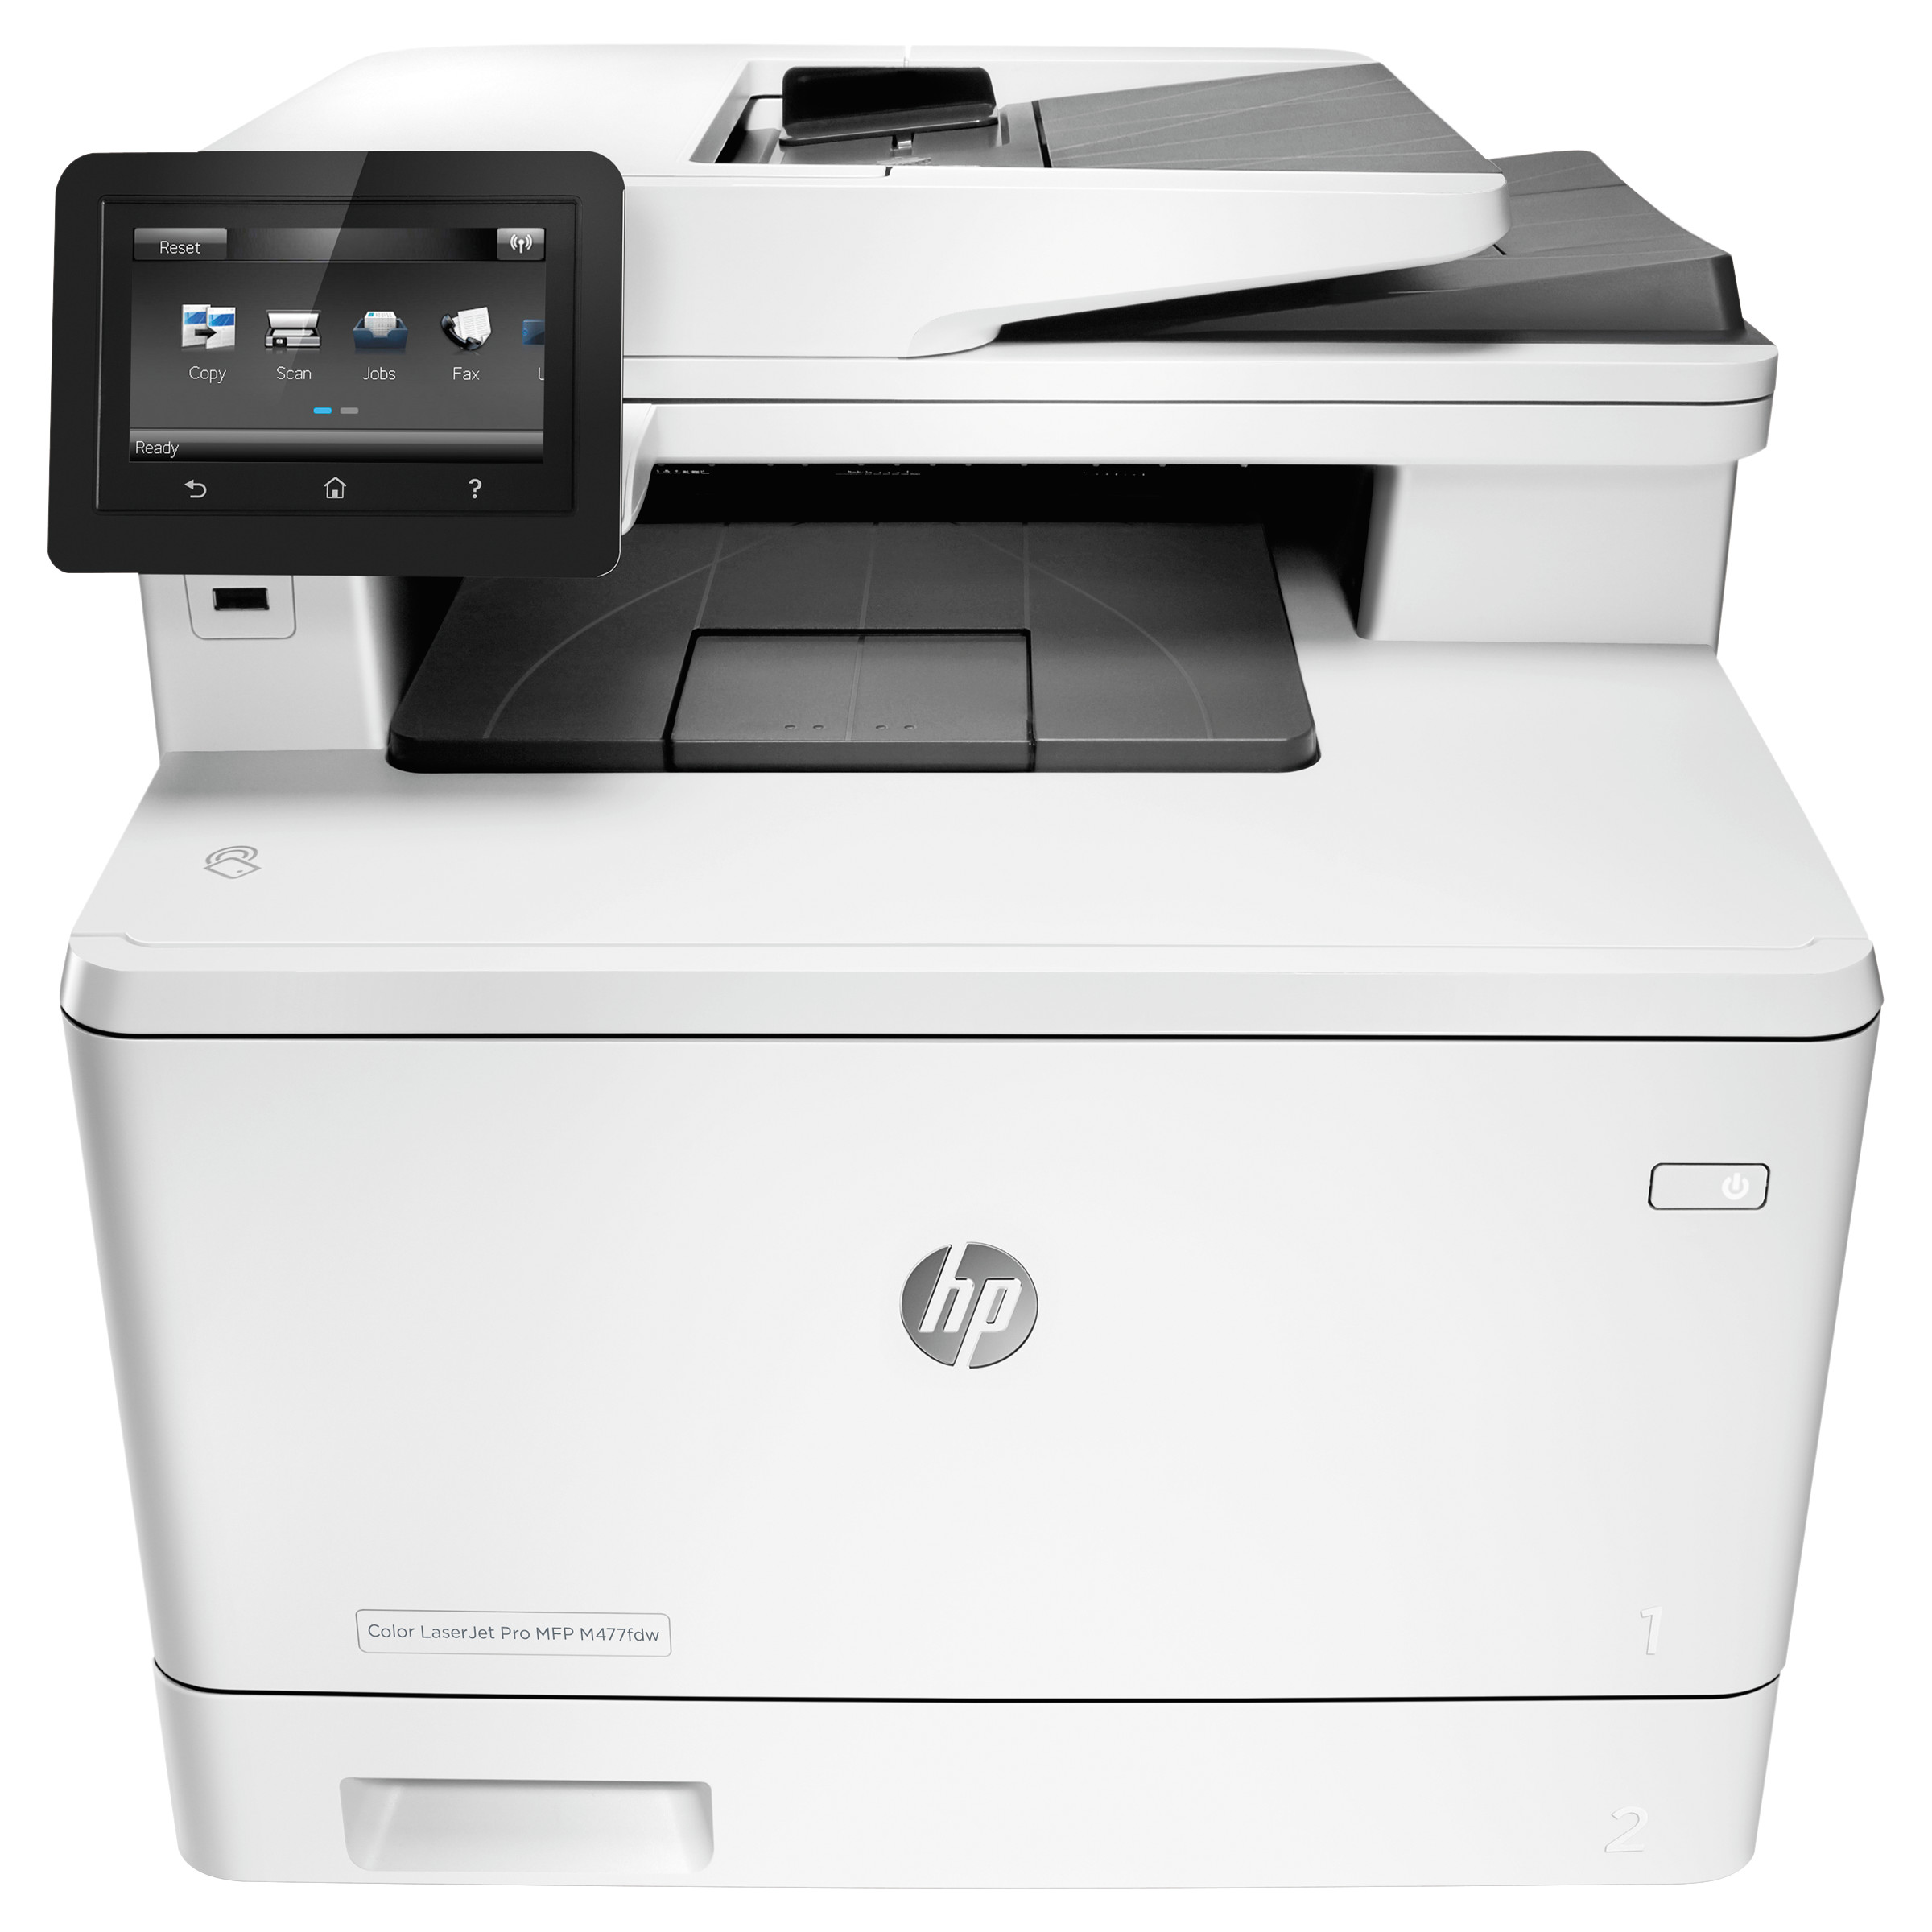 HP Color LaserJet Pro MFP M477fdw Wi-Fi Multifunction Printer, Copy Fax Print Scan by HP